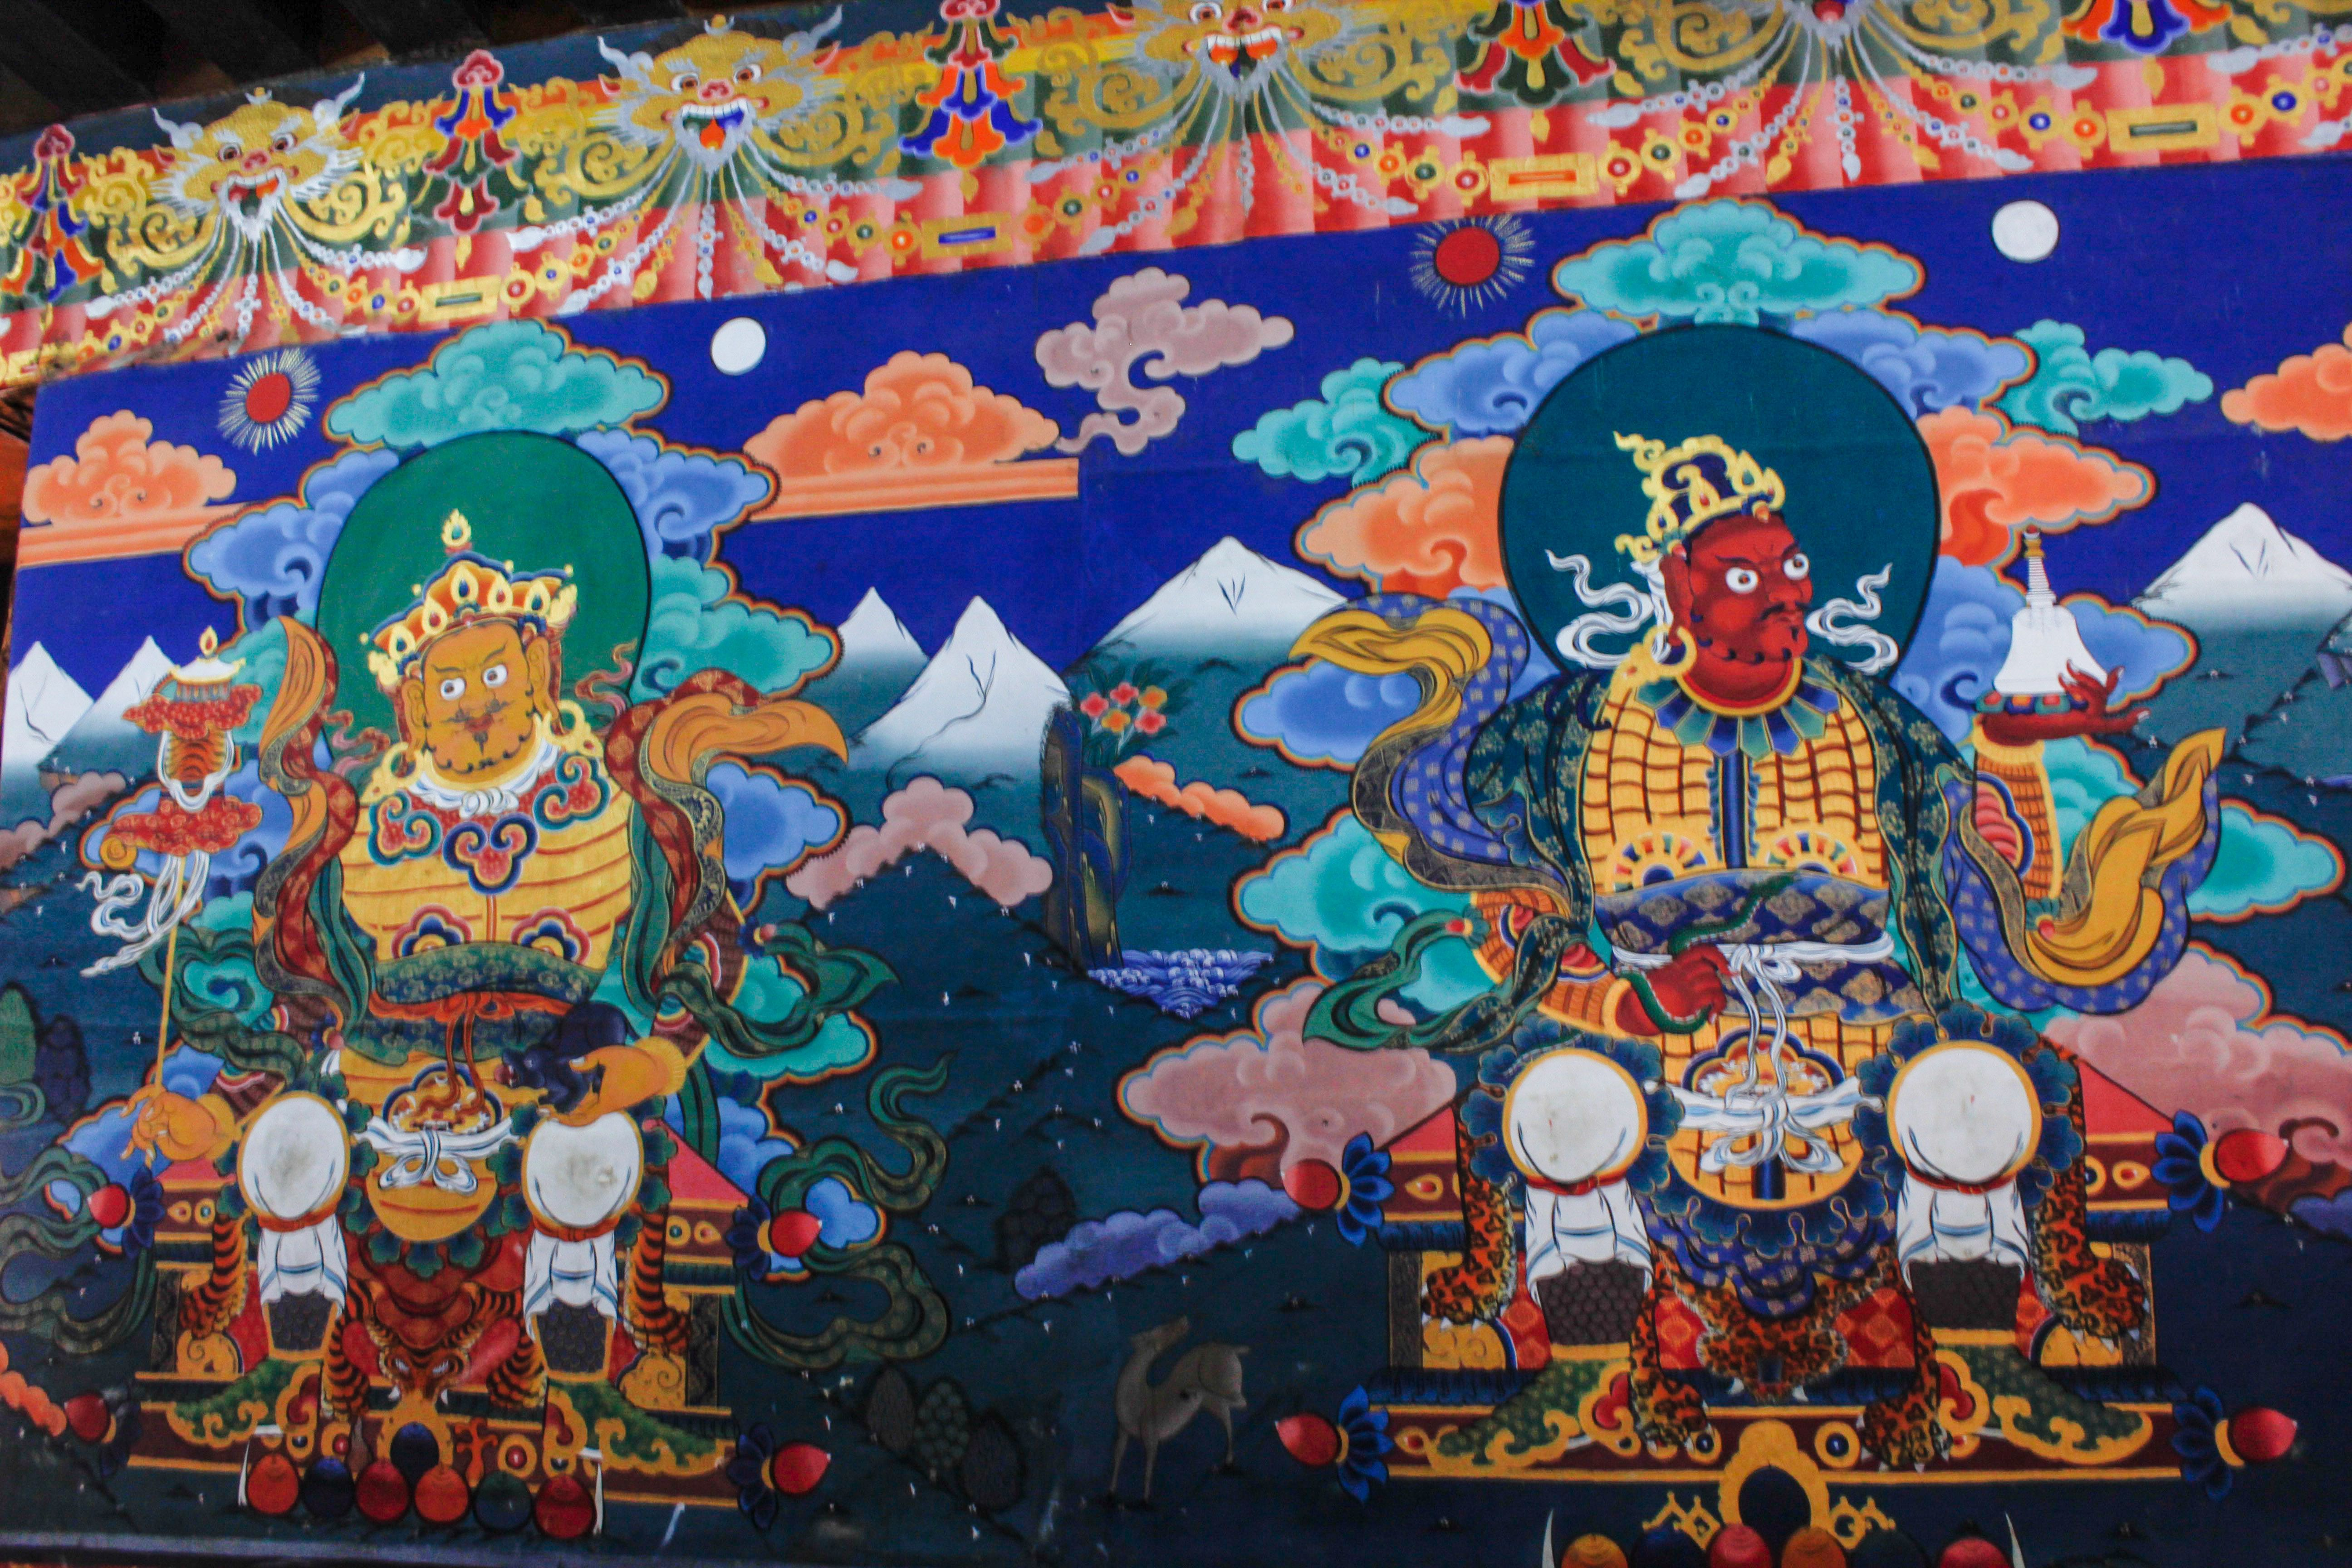 Buddhist Wall Painting At The Paro Rinpung Dzong In Bhutan It Is